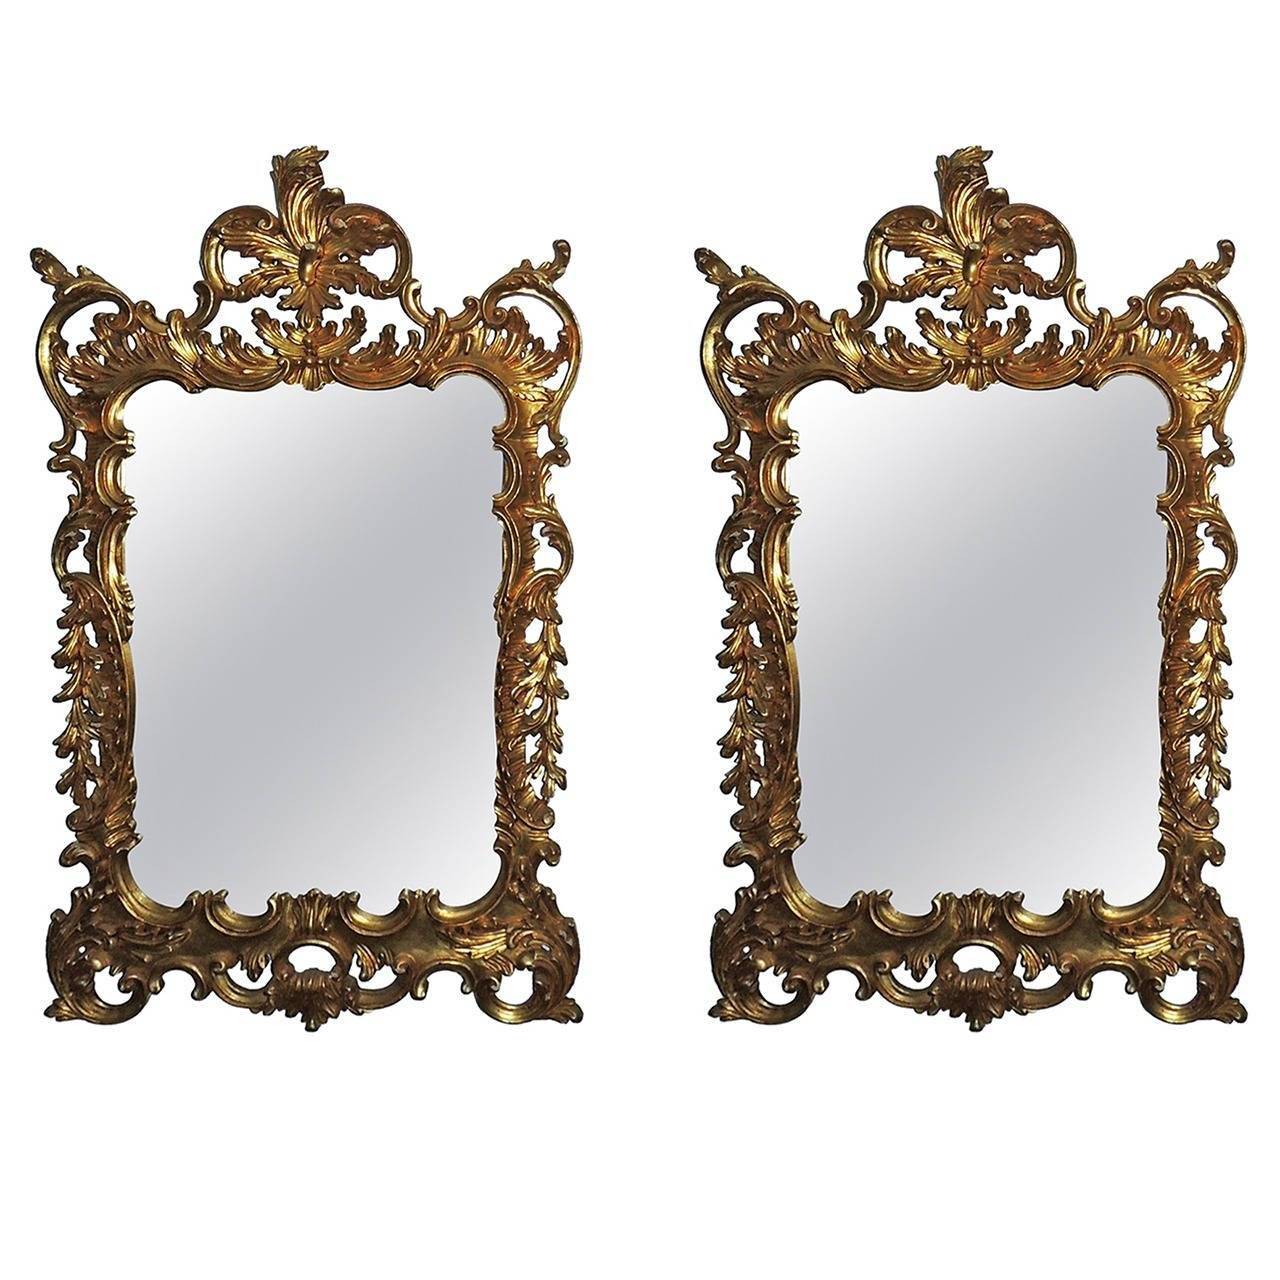 Wonderful Pair Of Italian Gilt Carved Wood Rococo Mirrors With for Gilt Mirrors (Image 25 of 25)